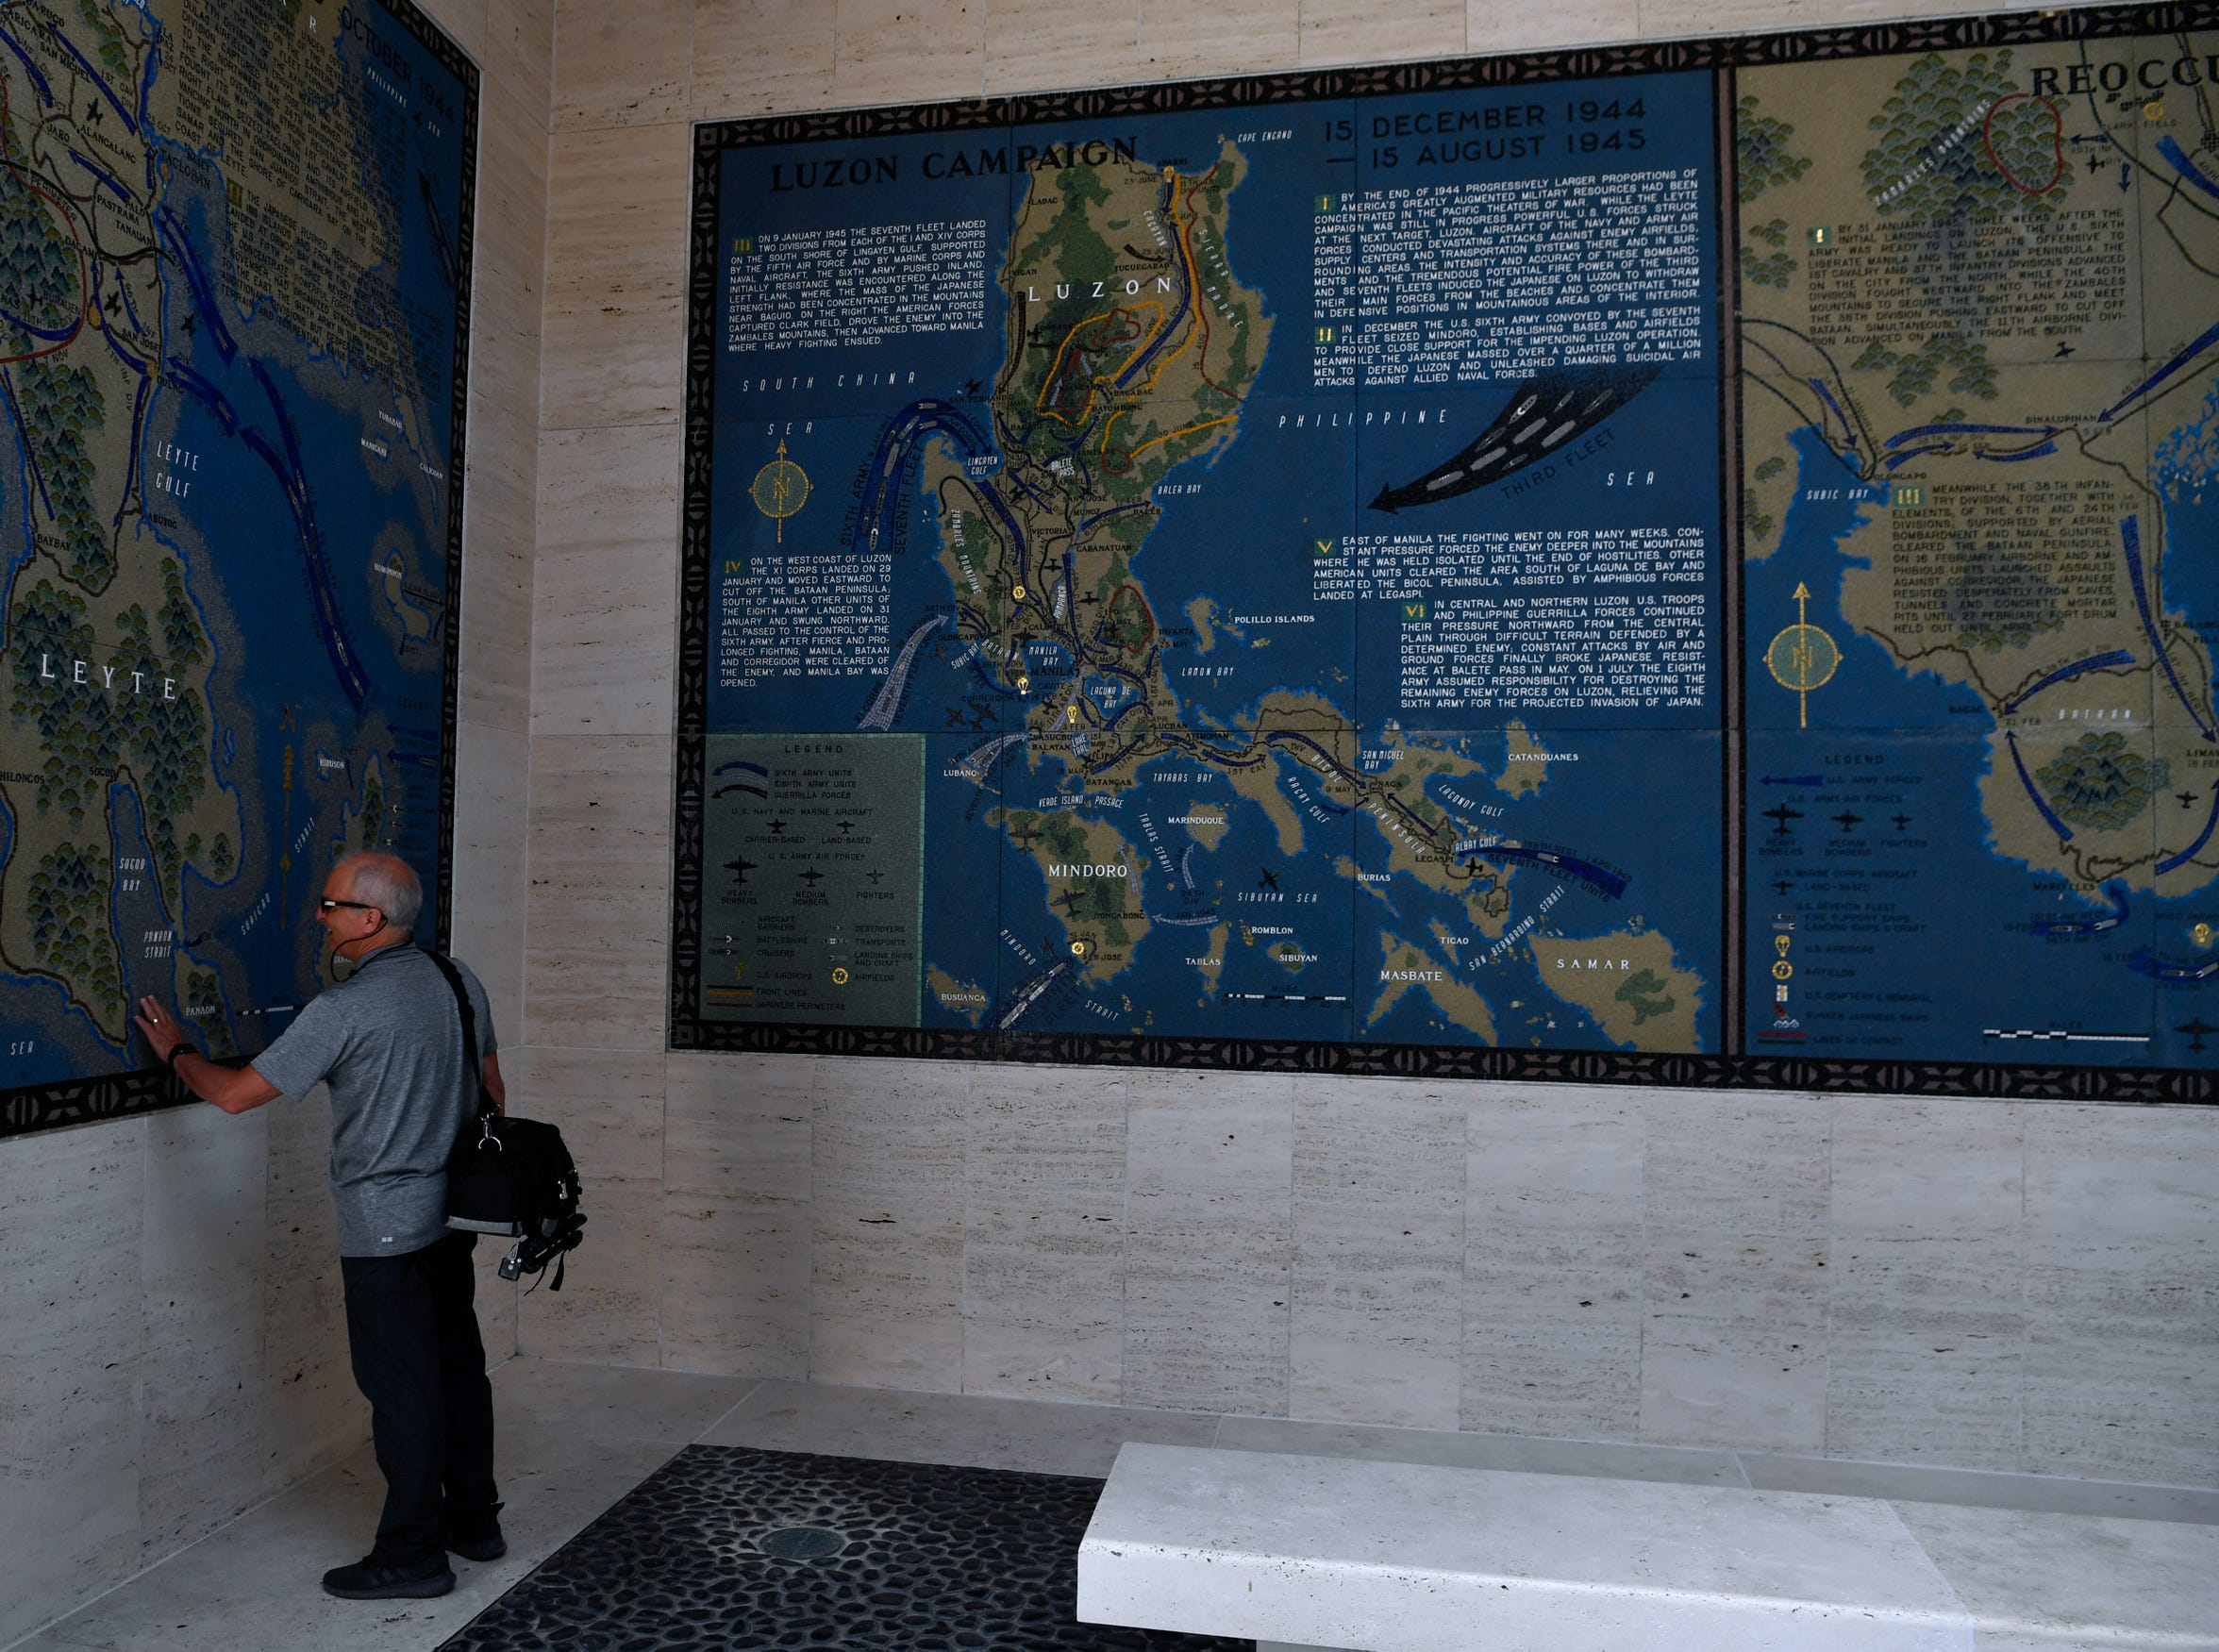 David Richter traces a hand over a mosaic map in one of the hemicycles at the Manila American Cemetery on Saturday. Richter is one of the architects who developed the site's new Visitor Center.